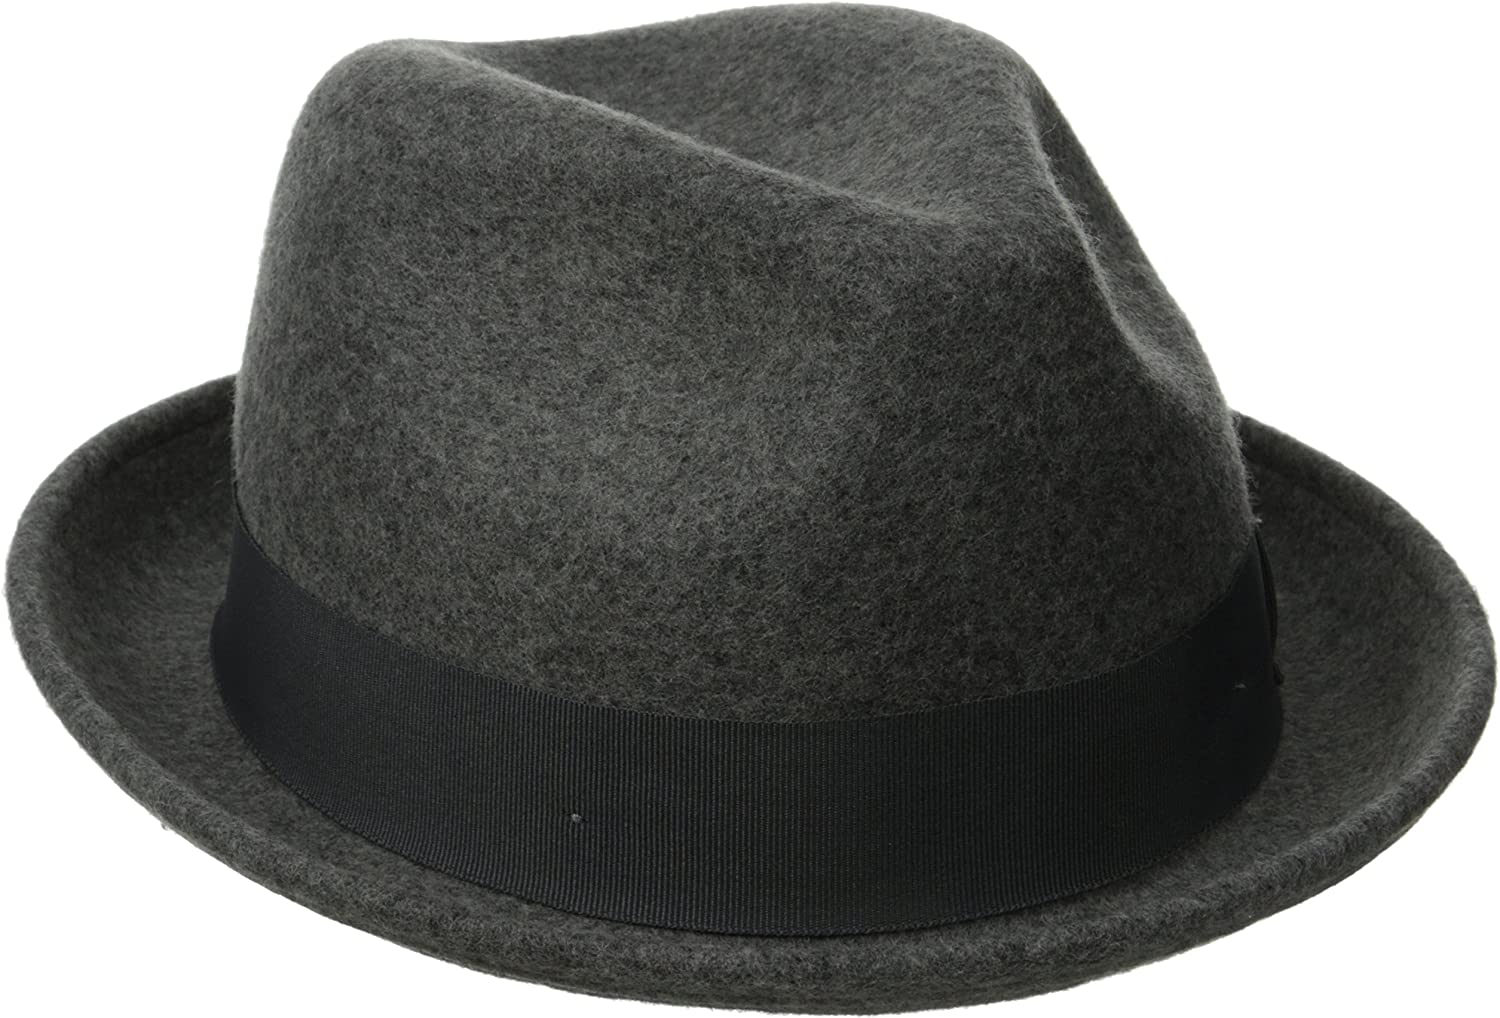 Goorin Popular products Bros. Men's Boy Good Limited time cheap sale Fedora